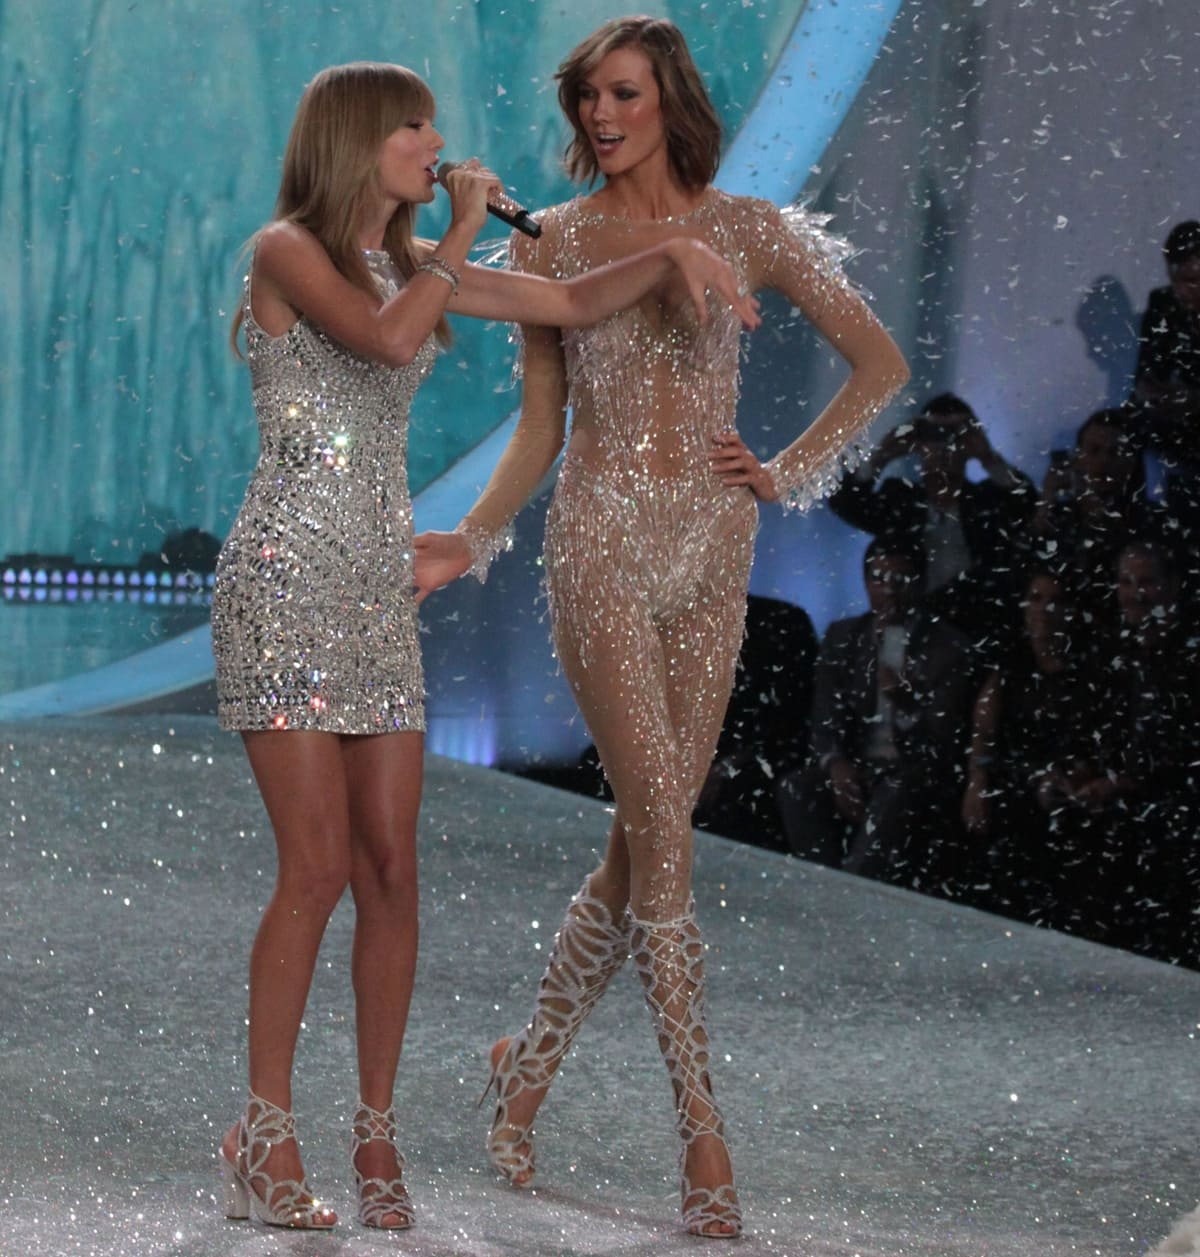 Singer Taylor Swift (L) performs and model Karlie Kloss walks the runway at the 2013 Victoria's Secret Fashion Show